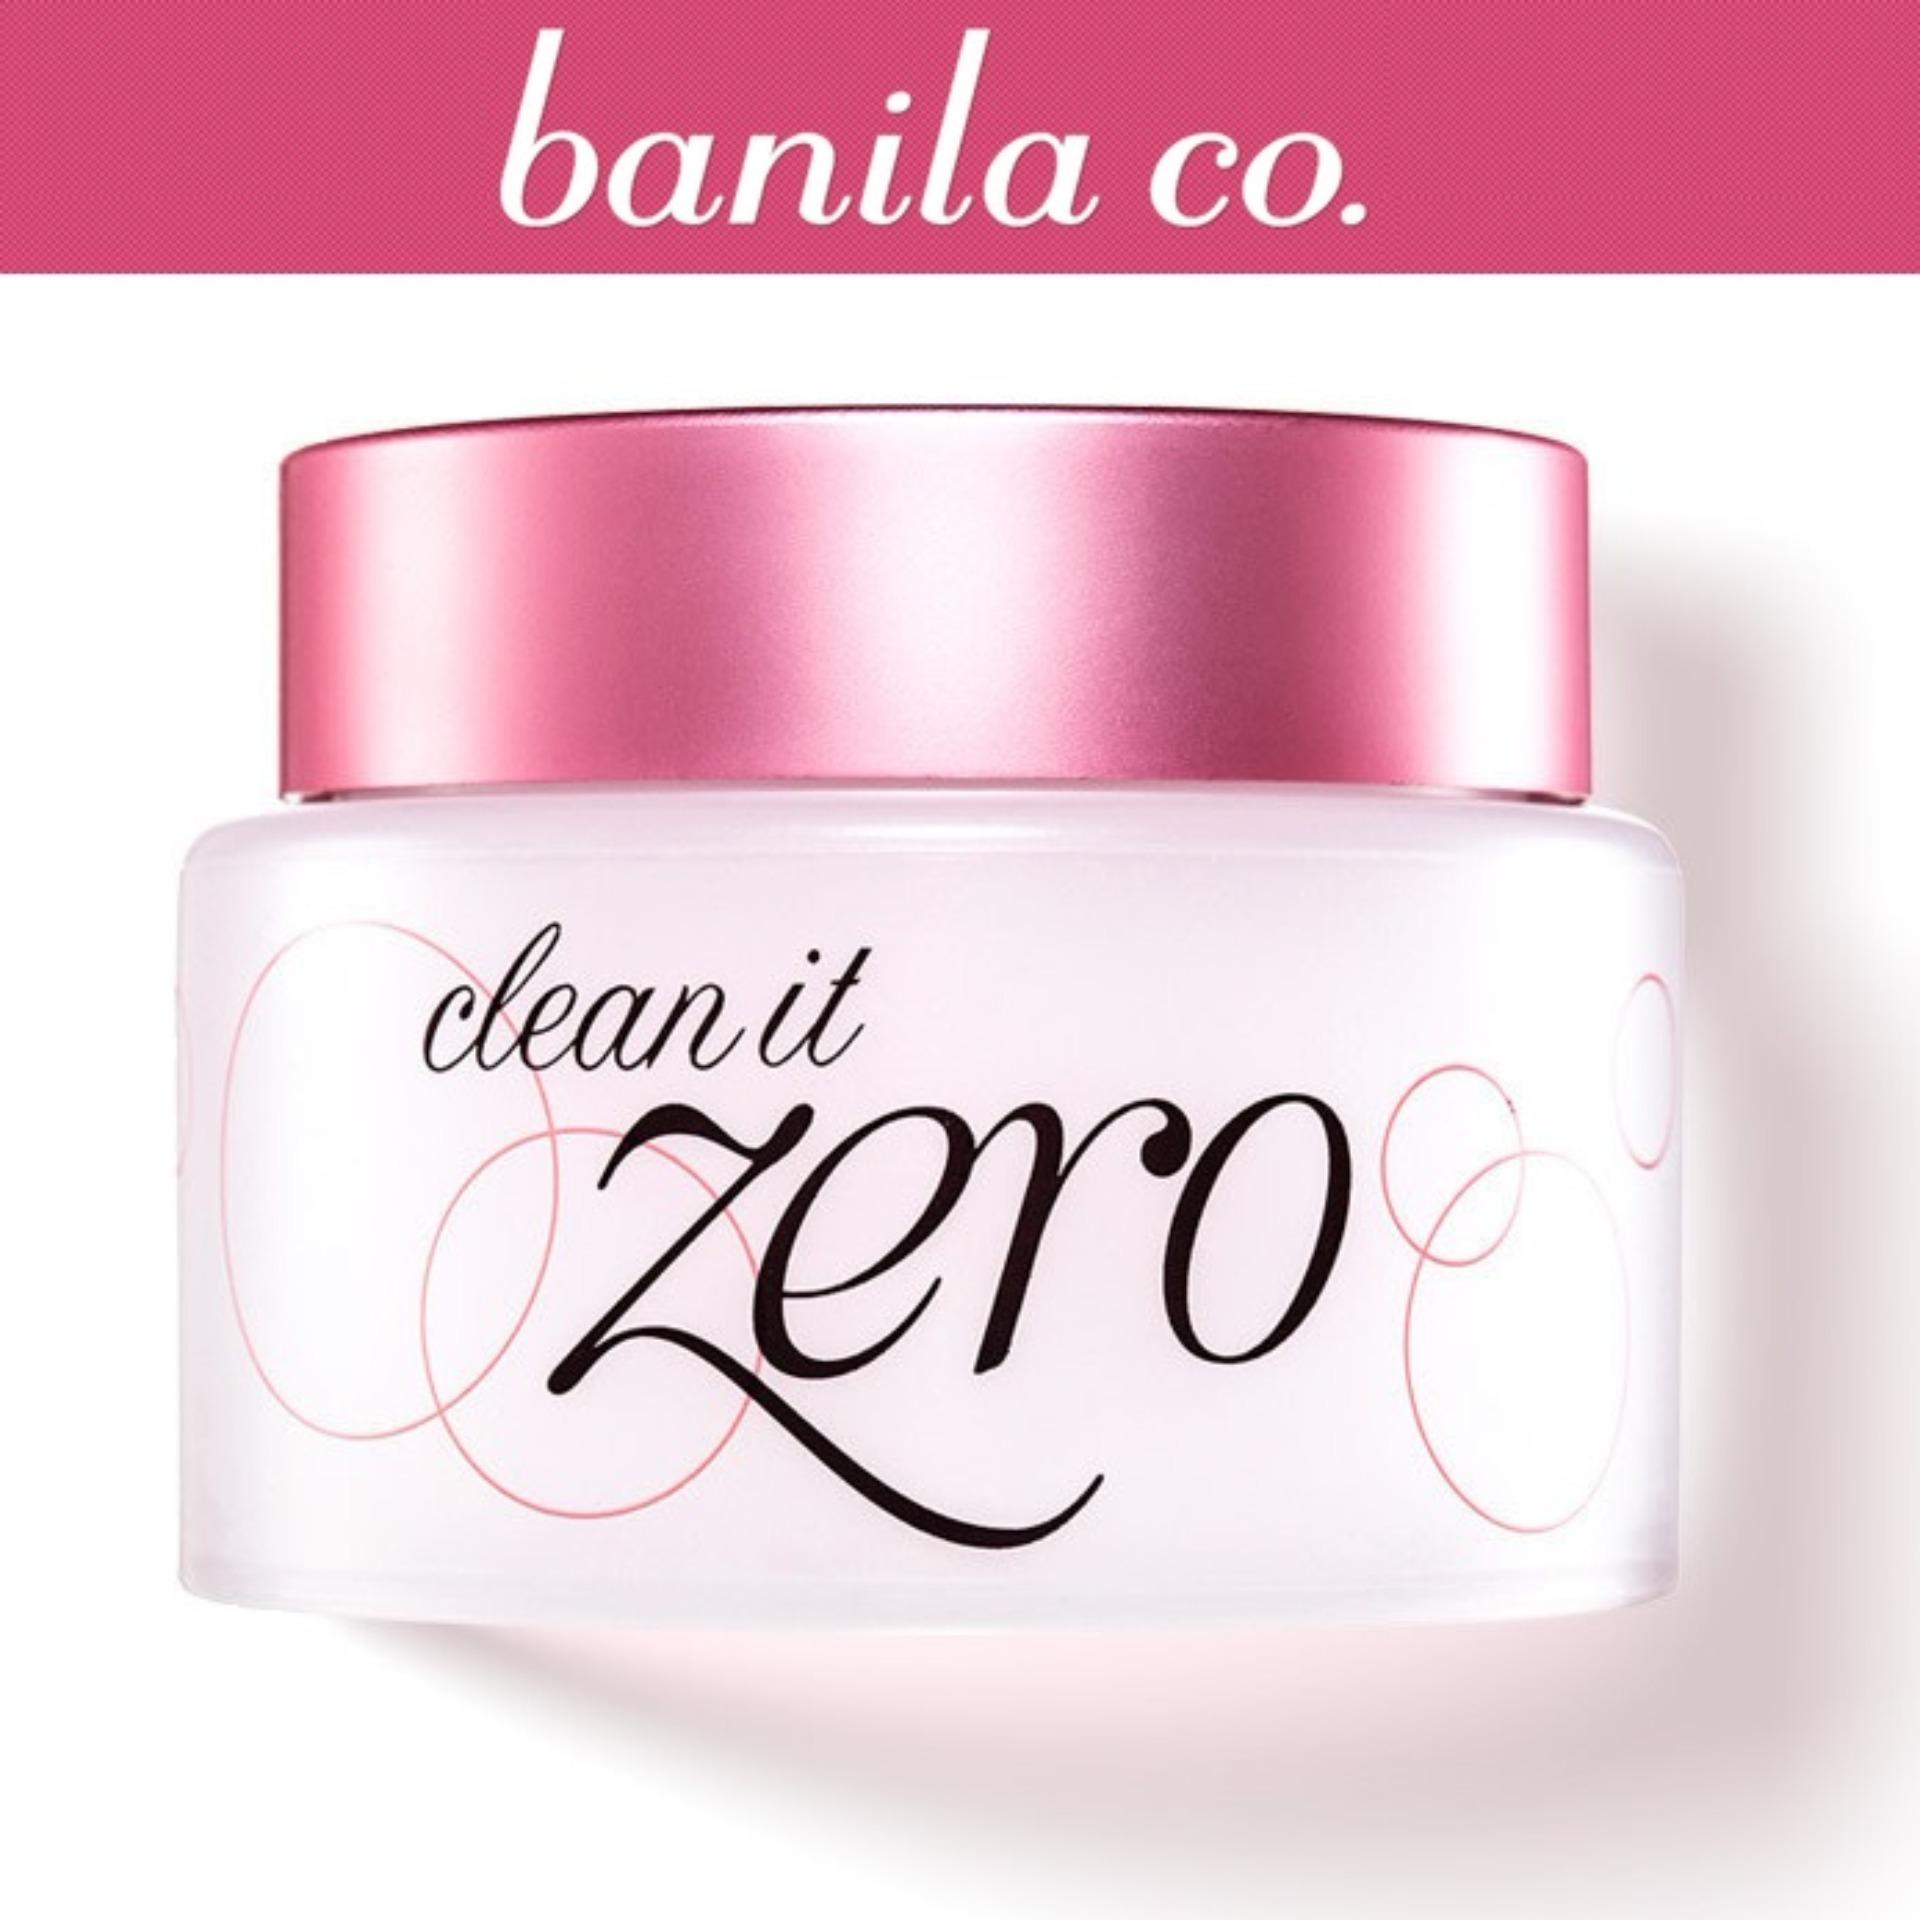 Price Banila Co Clean It Zero 100Ml Banila Co Hong Kong Sar China